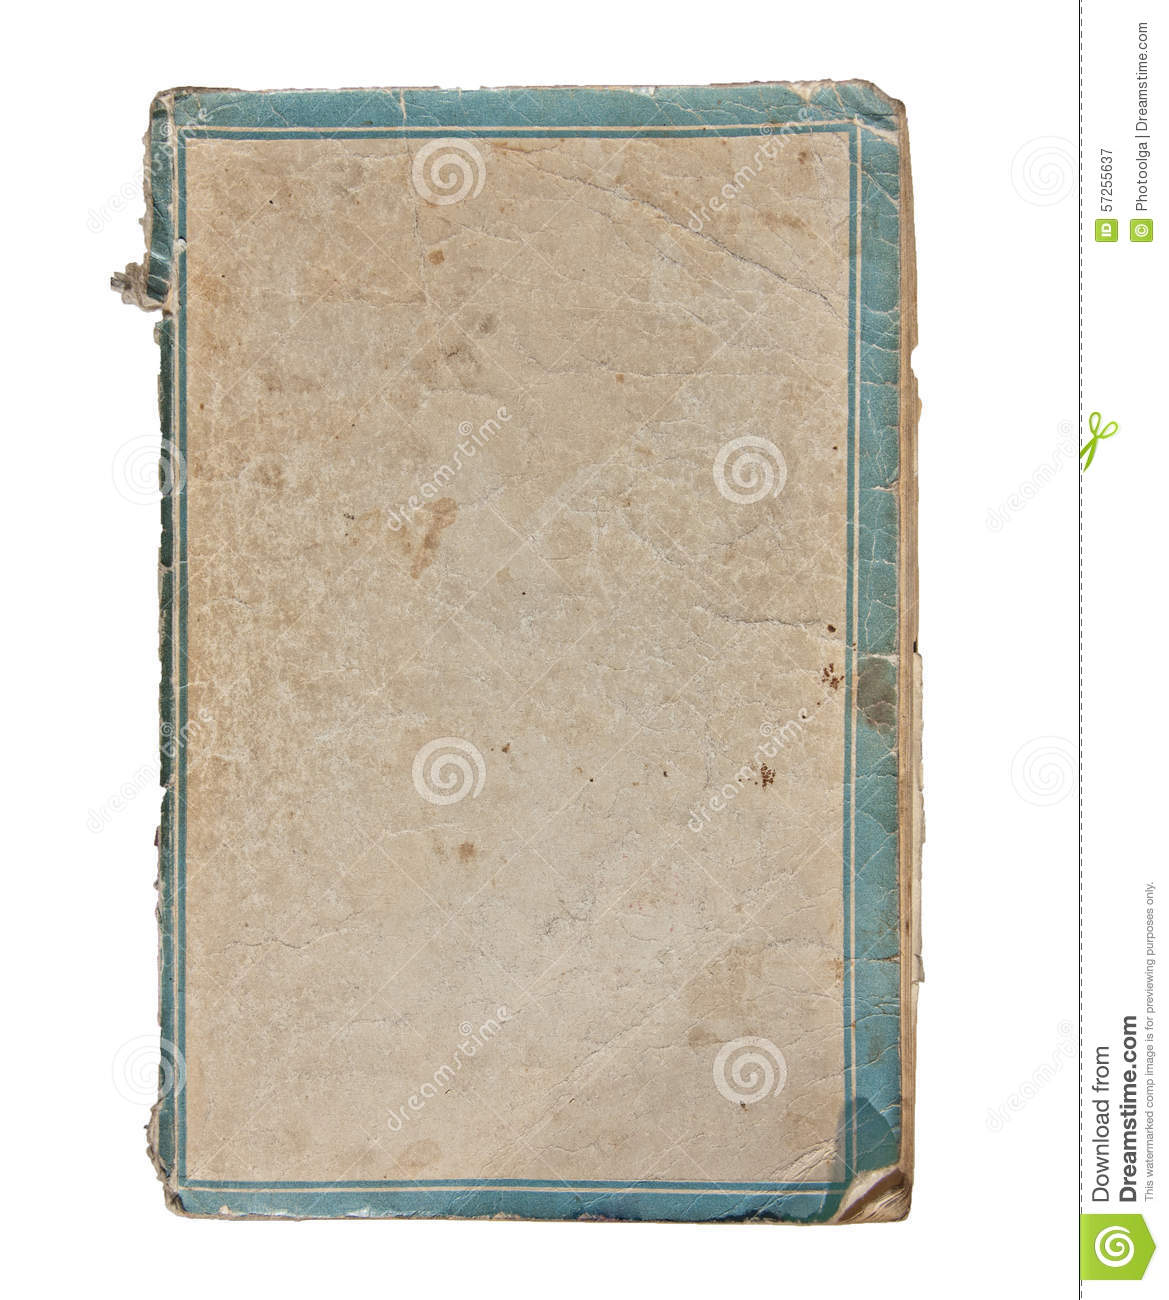 Old Paper Cover Of The Notebook Stock Photo - Image: 57255637